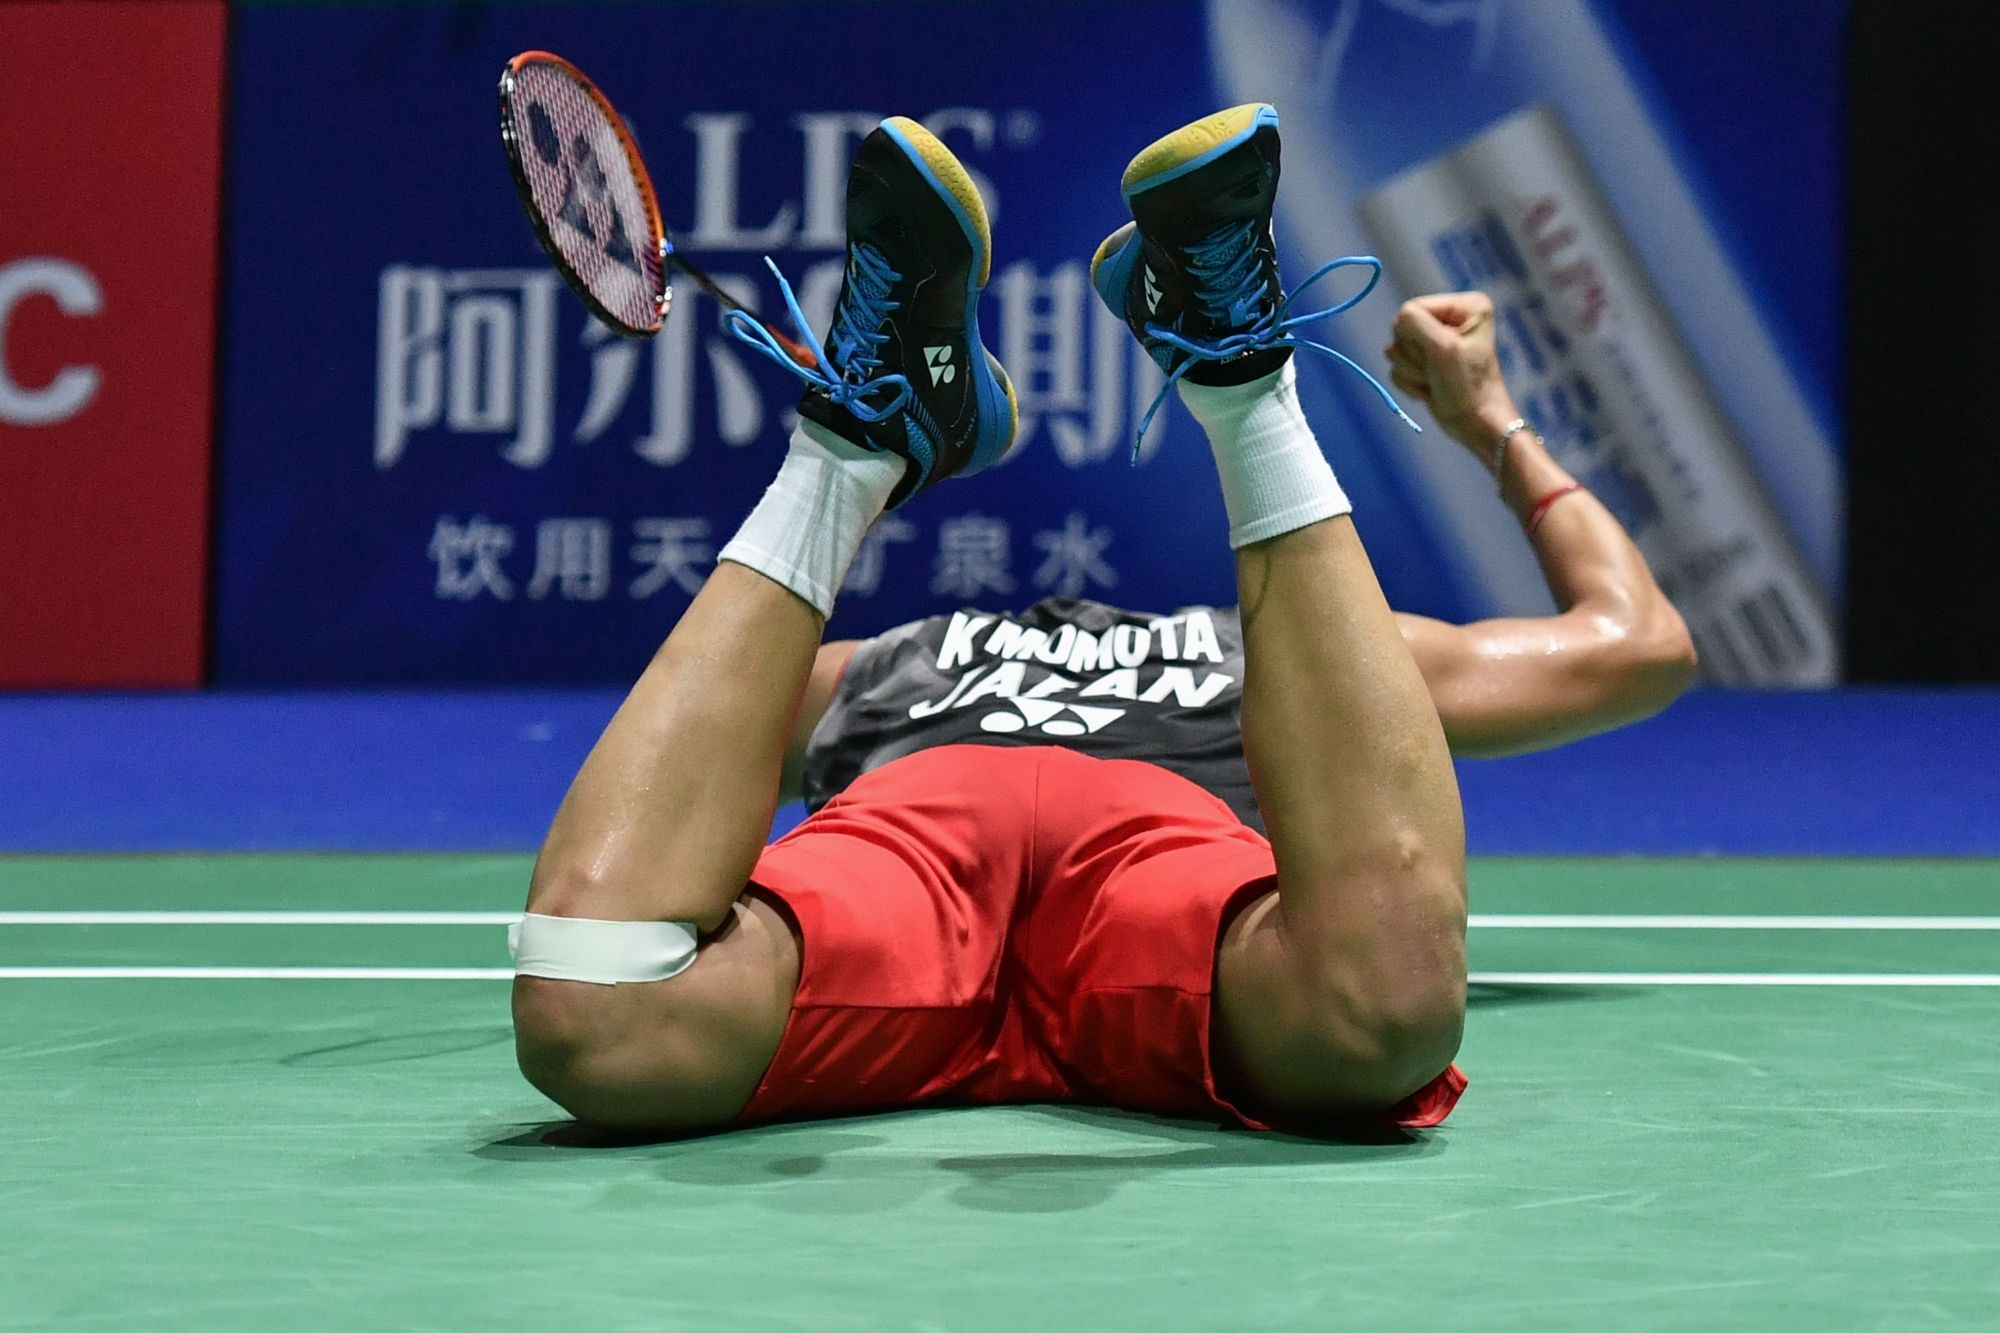 Japan's Kento Momota celebrates his victory against Denmark's Anders Antonsen during the men's singles final game at the BWF Badminton World Championships at the St. Jakobshalle in Basel, Switzerland, Sunday. | AFP-JIJI